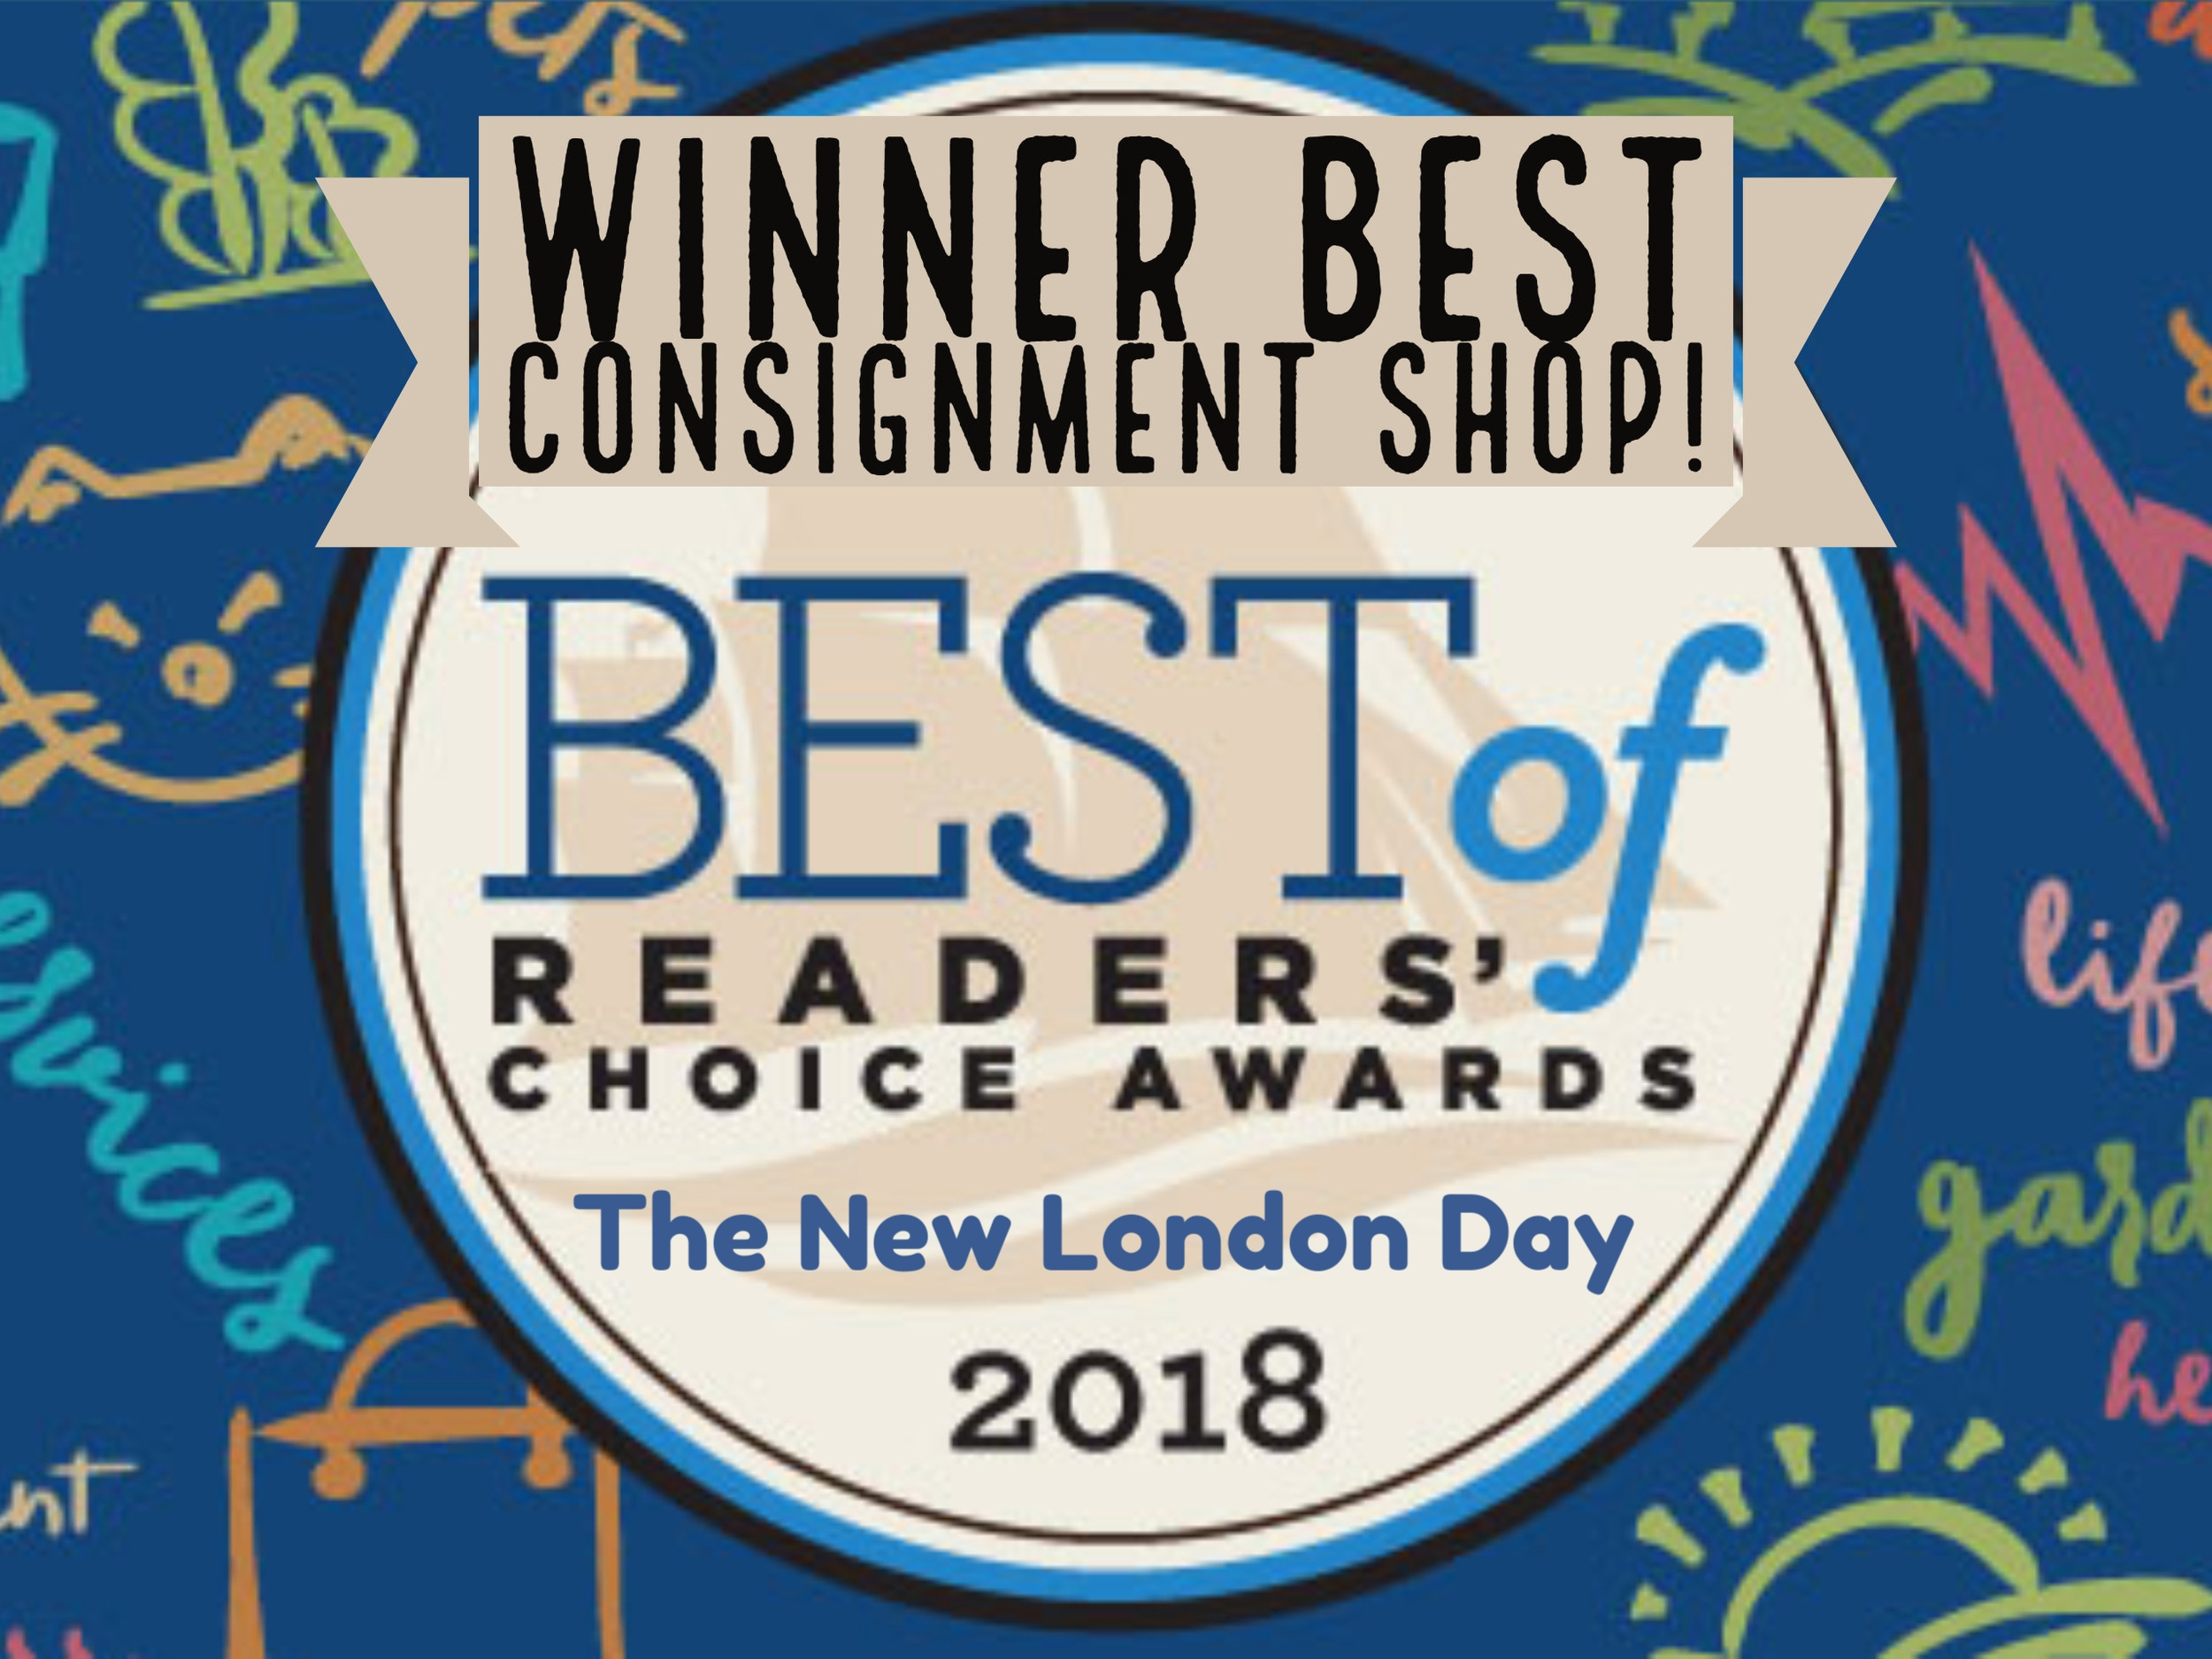 Winner New London Day Best Consignment Shop!